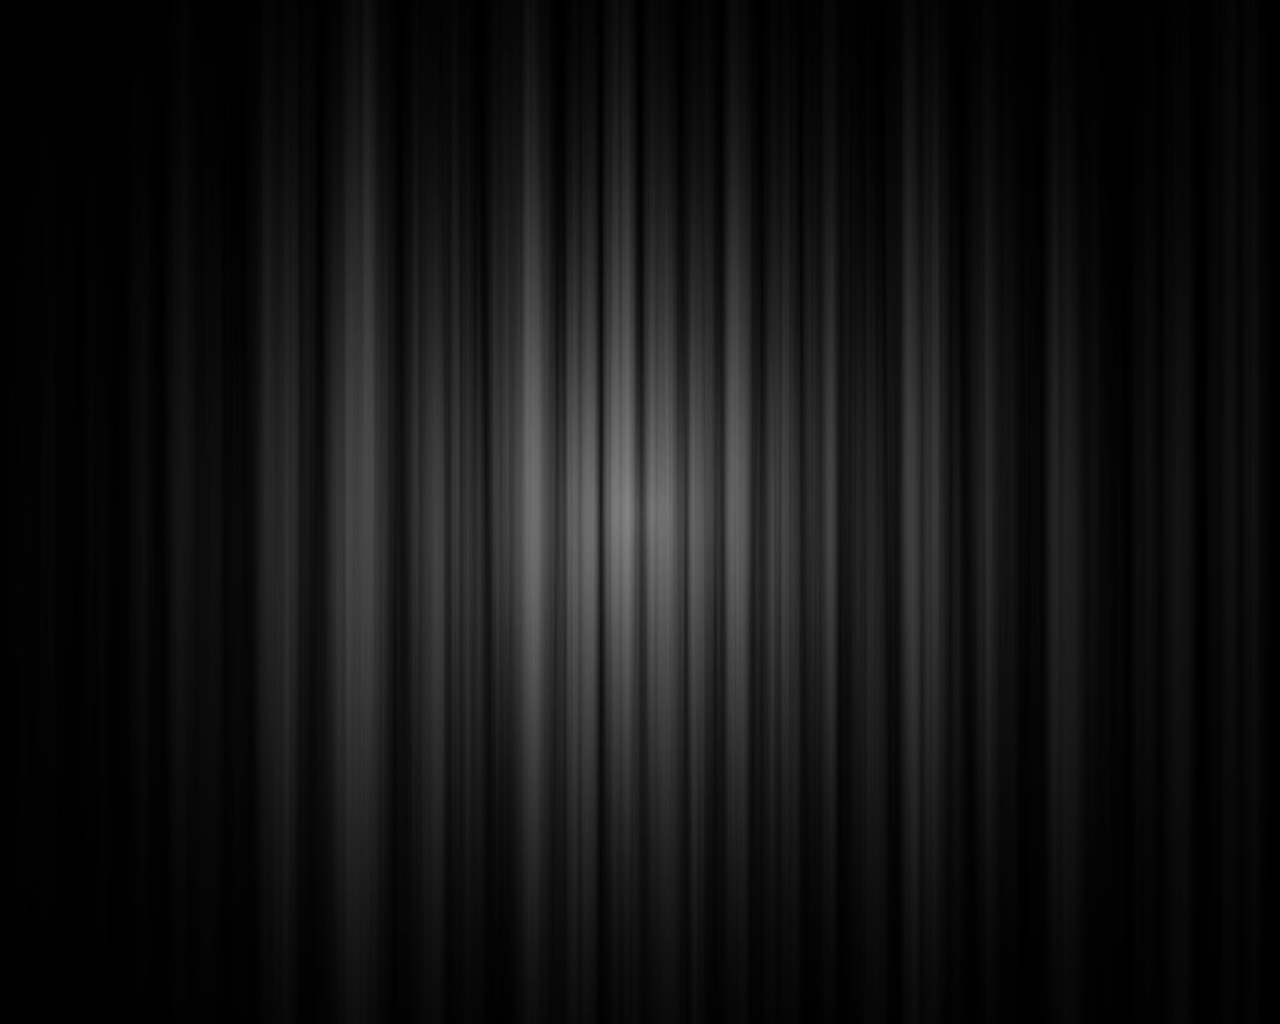 Free download grey abstract hd wallpaper background image for Grey wallpaper